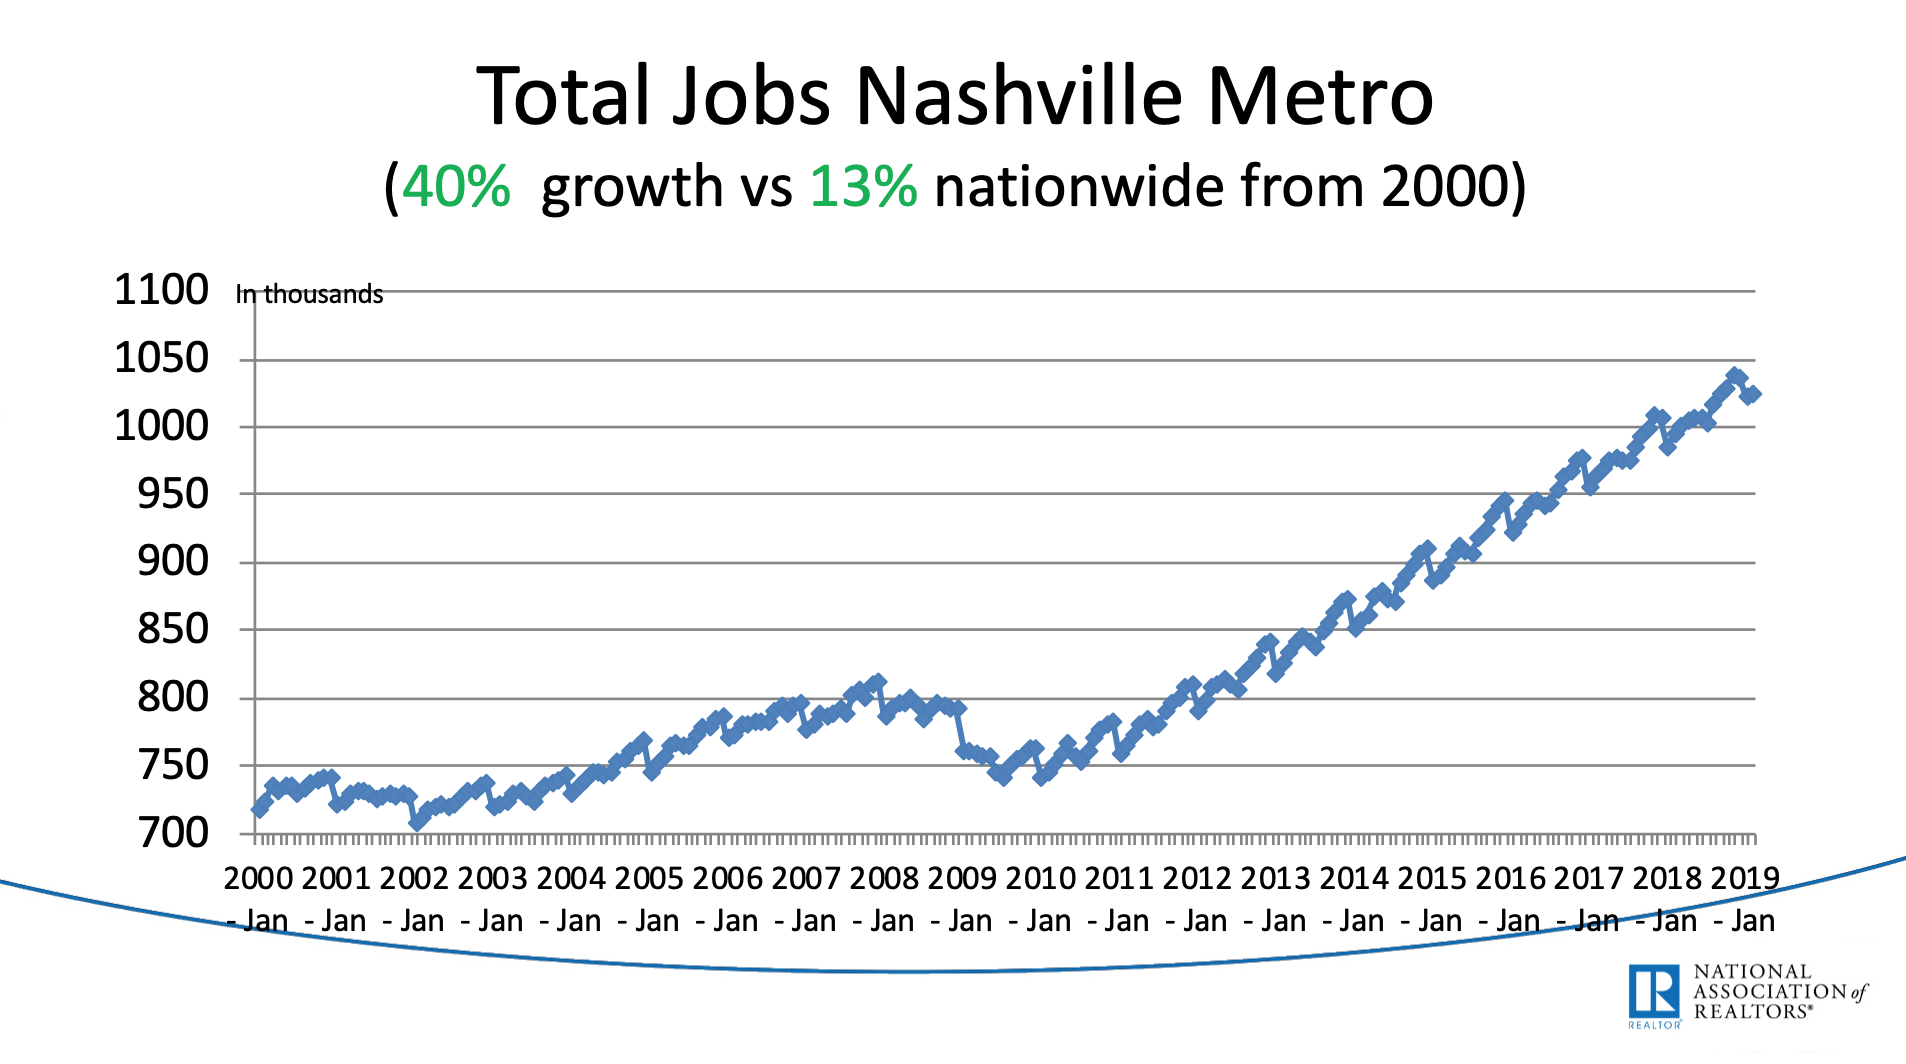 The red flag in Nashville's job growth